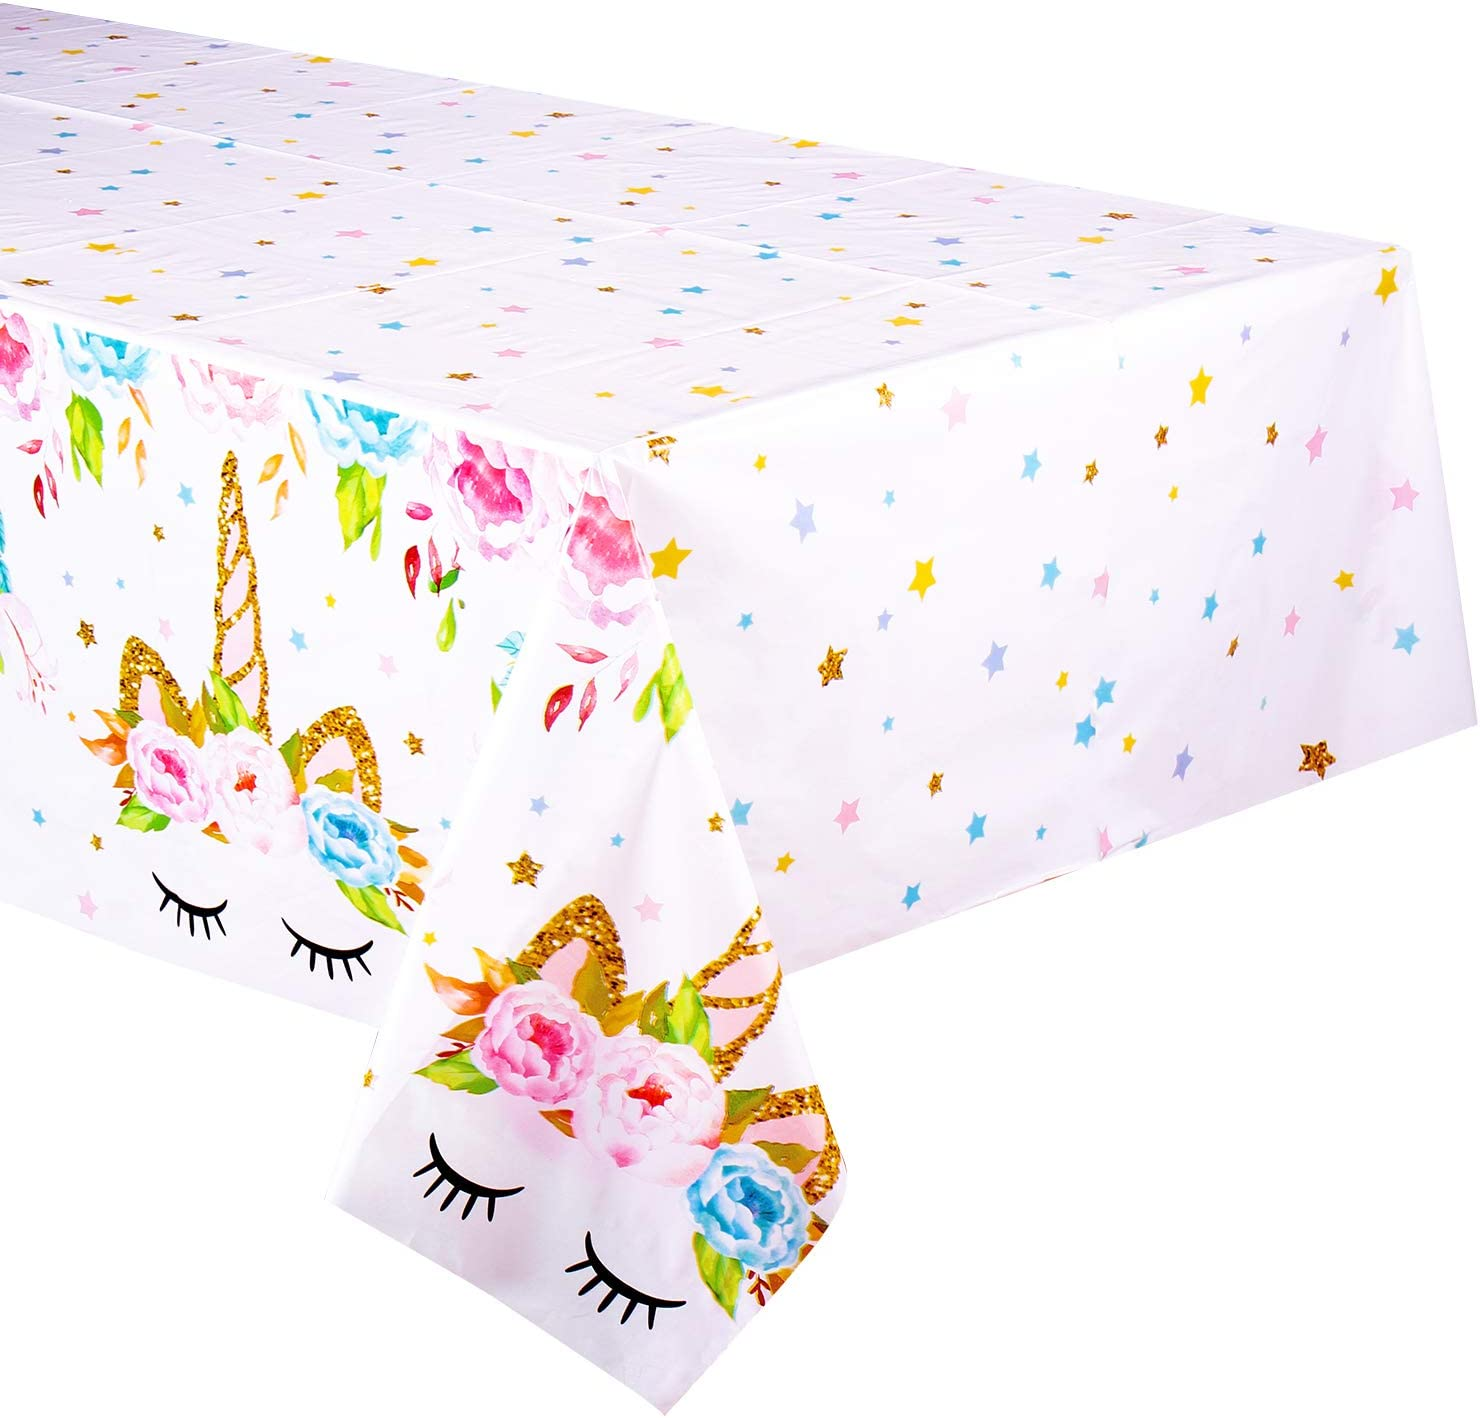 Unicorn Themed Birthday Party Decorations - Unicorn Plastic Tablecloth | 53 x 90 inches,Disposable Table Cover | Magical Unicorn Party Supplies for ...